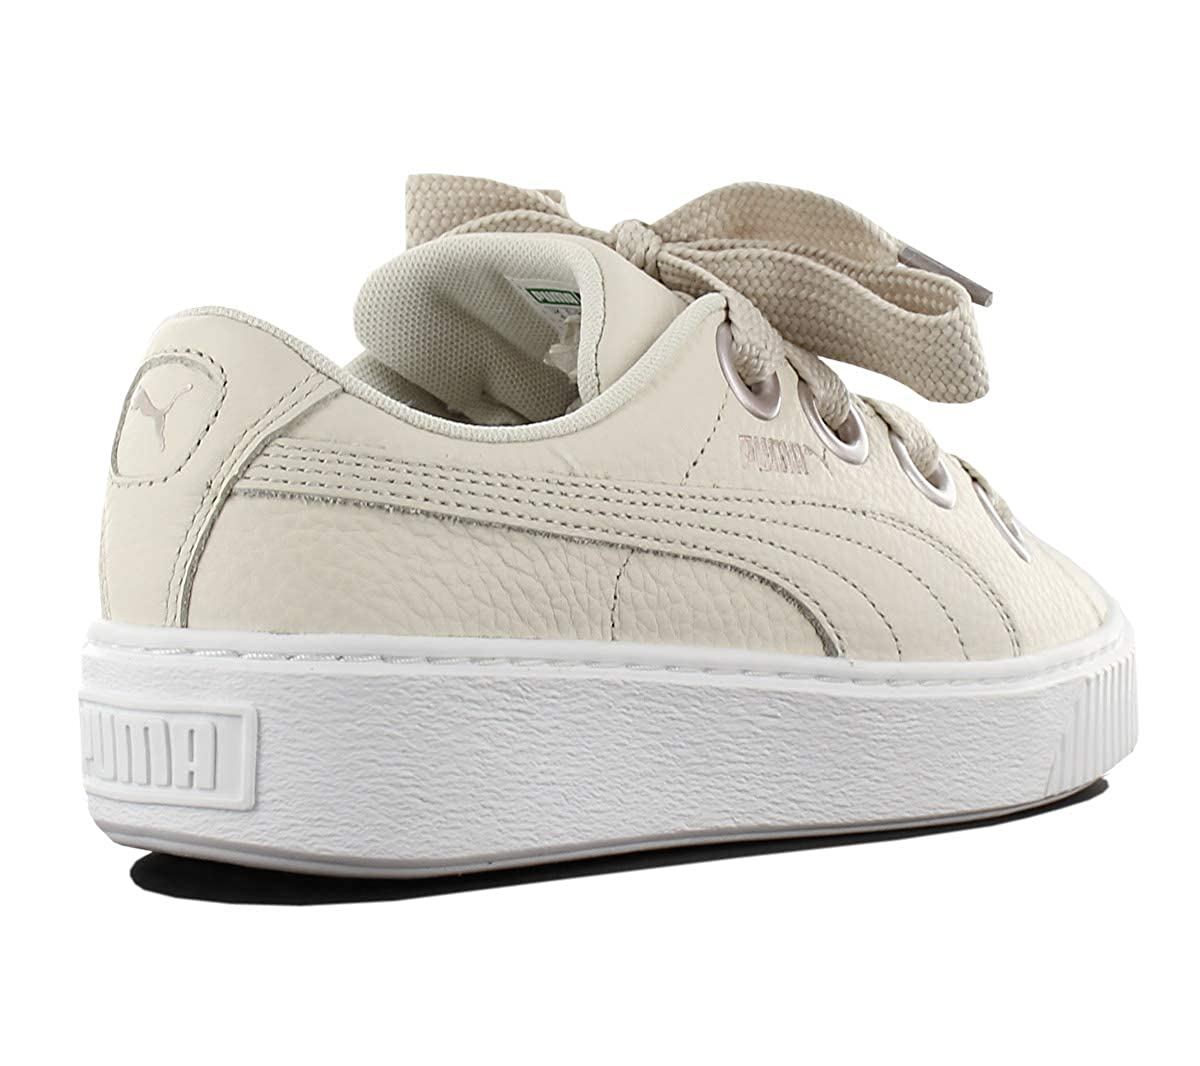 f15874d122e816 Puma Women s Platform Kiss Lea Wn S Birch Leather Sneakers-7.5 UK India (41  EU) (36646002)  Buy Online at Low Prices in India - Amazon.in